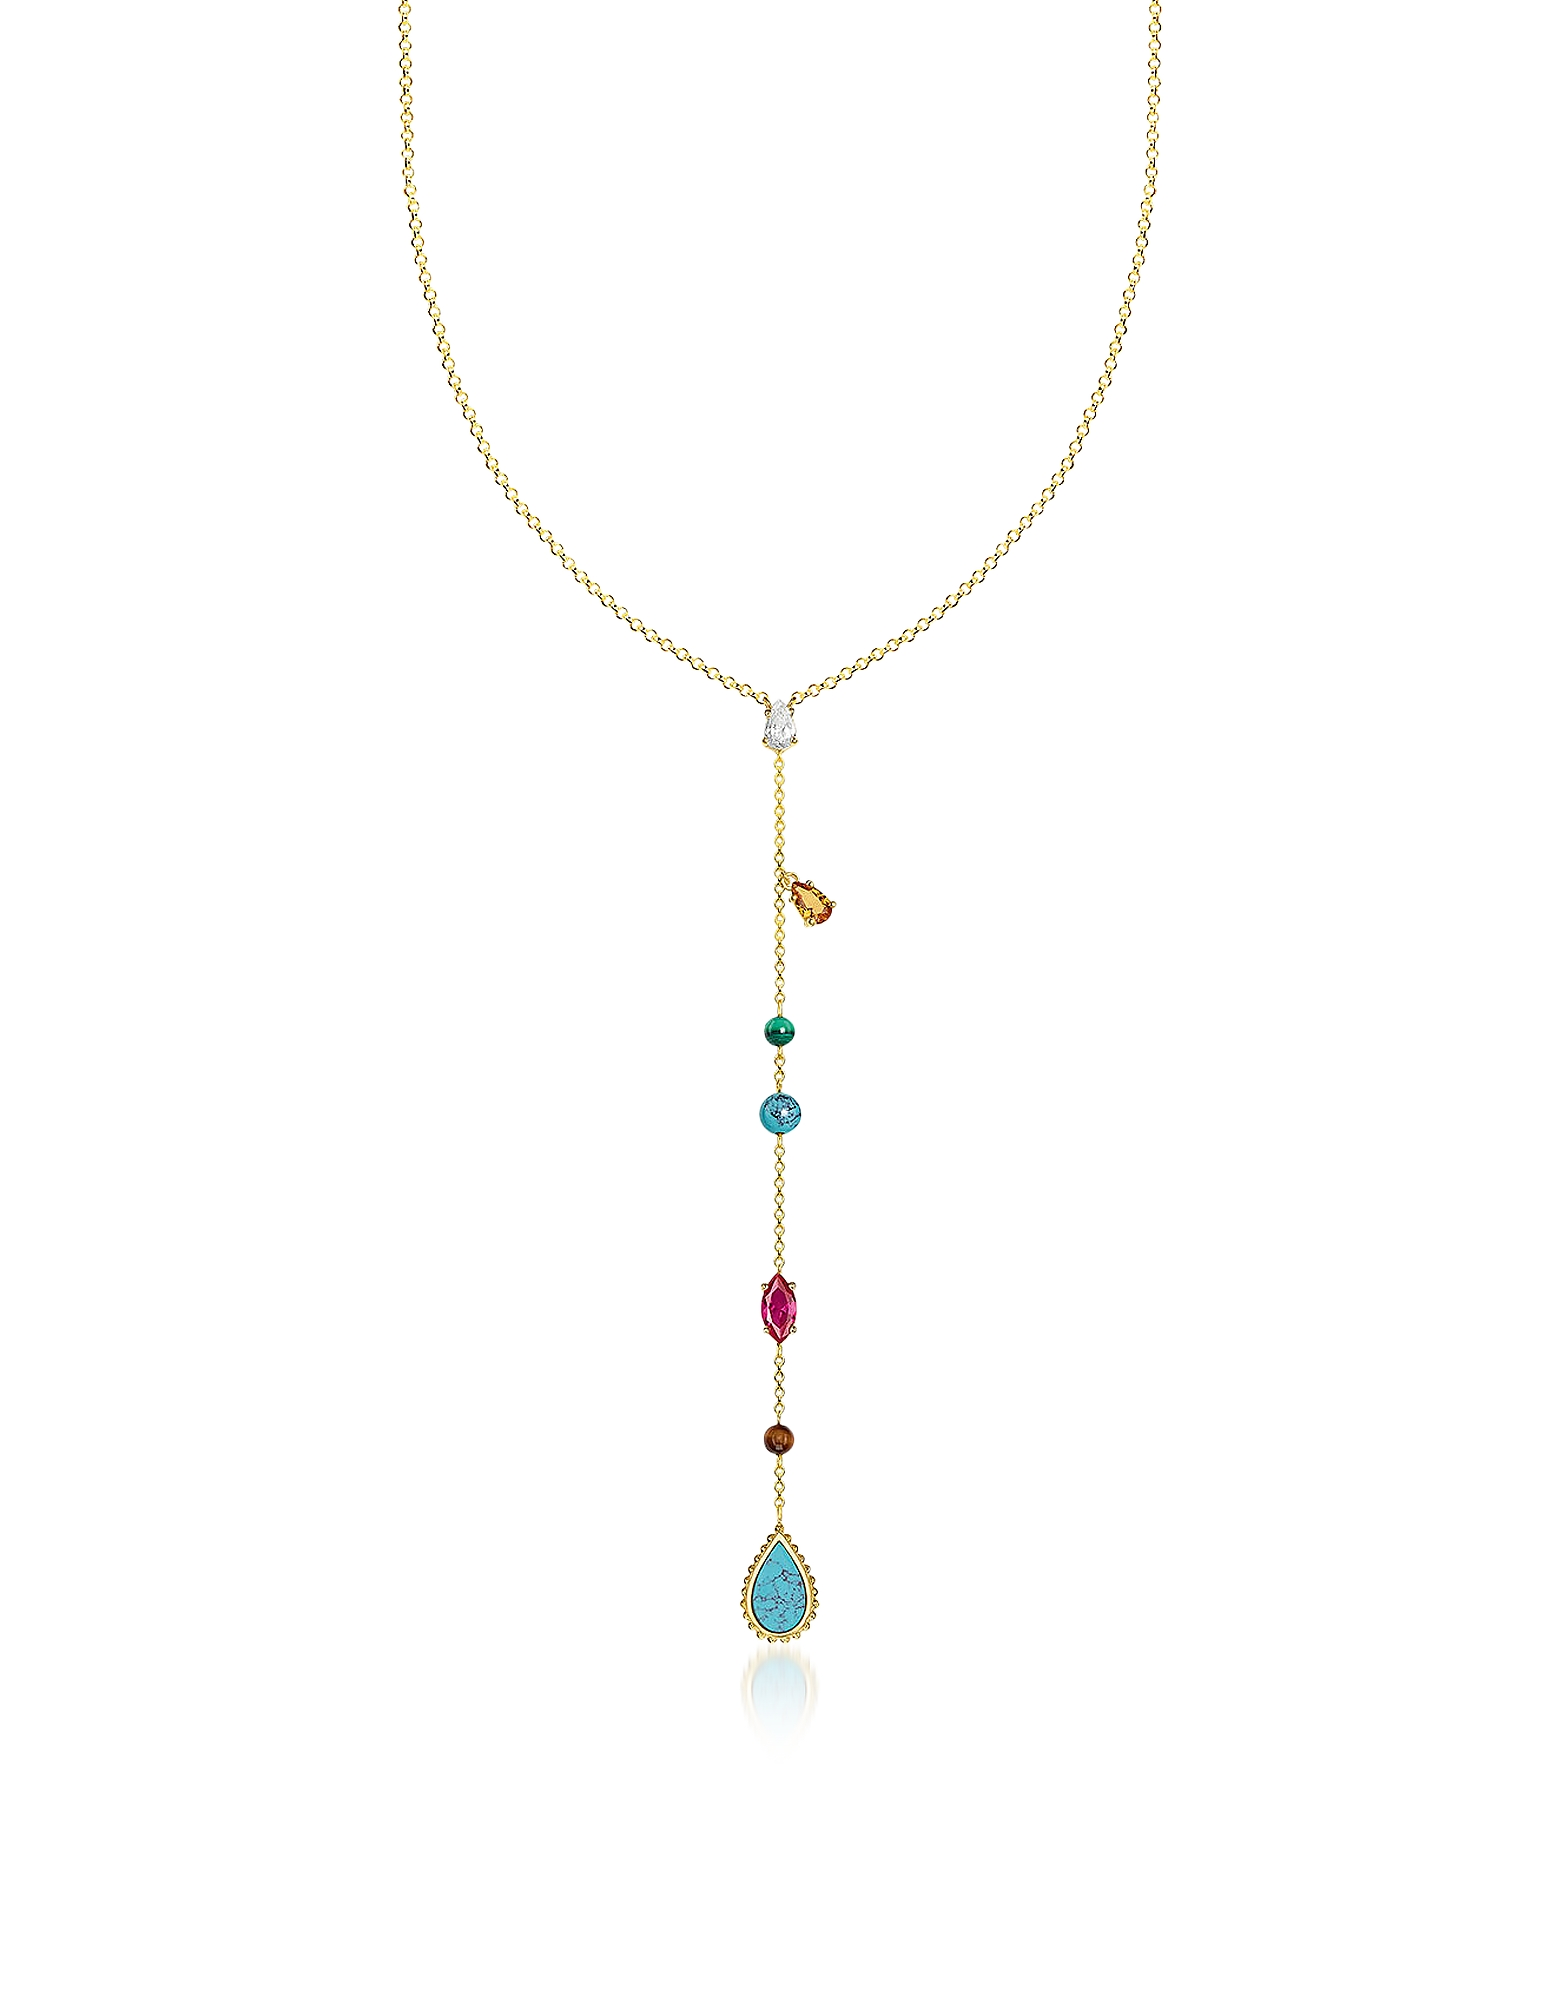 Gold Plated Sterling Silver Riviera Colours Long Necklace w/Ceramic Stones